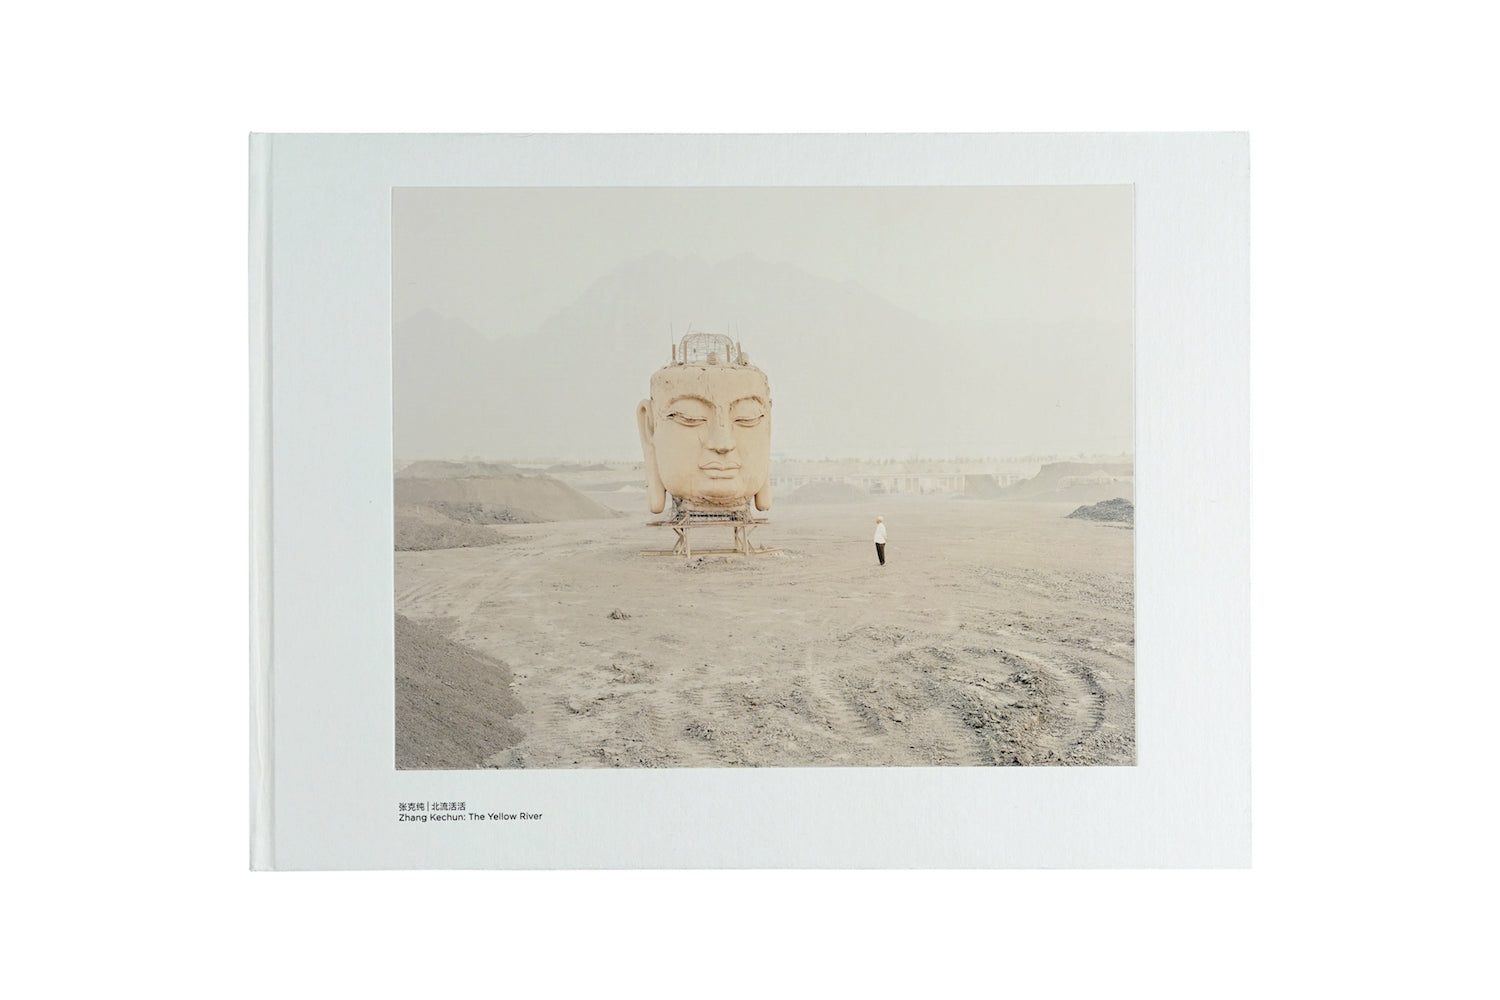 The Yellow River(3rd) by Zhang Kechun